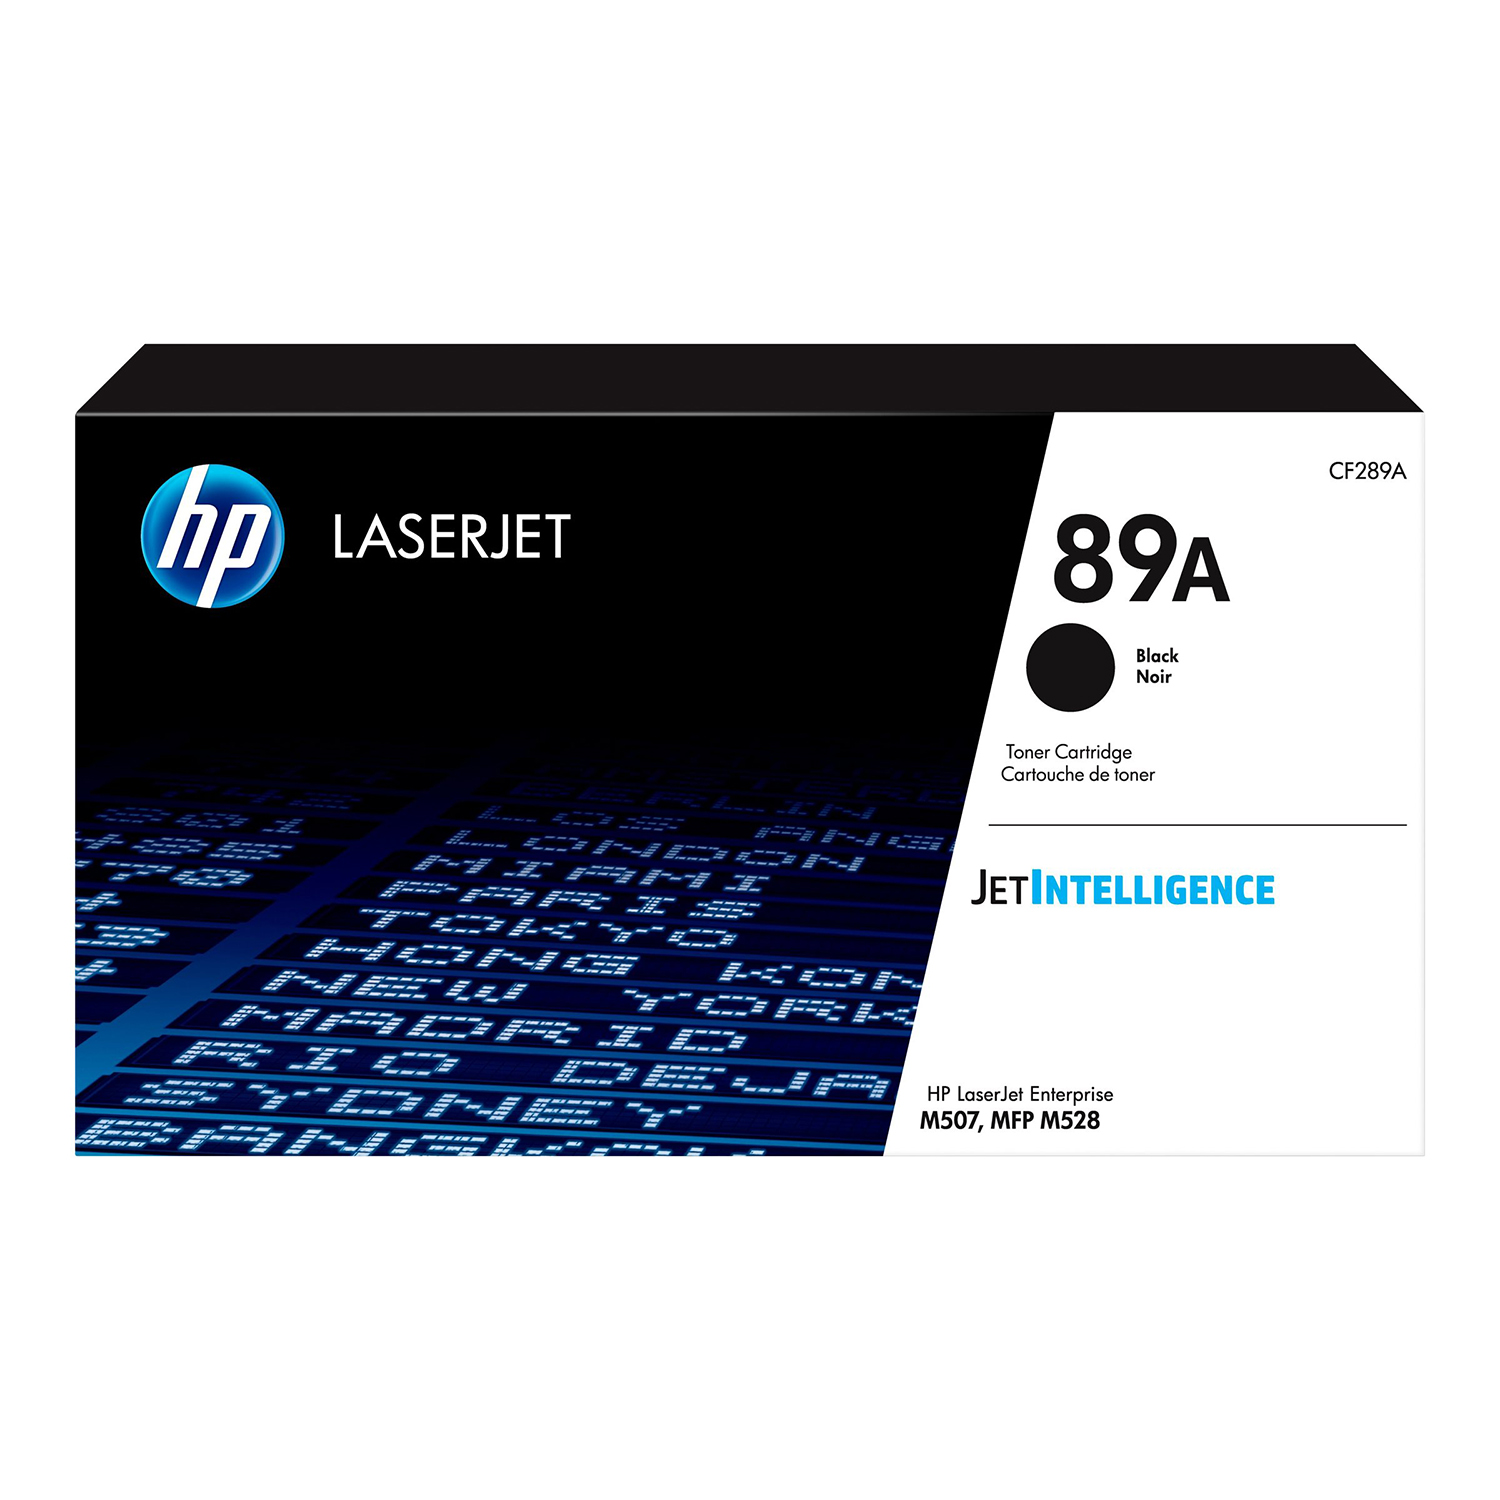 Hewlett Packard 89A Laser Toner Cartridge Page Life 5000pp Black Ref CF289A